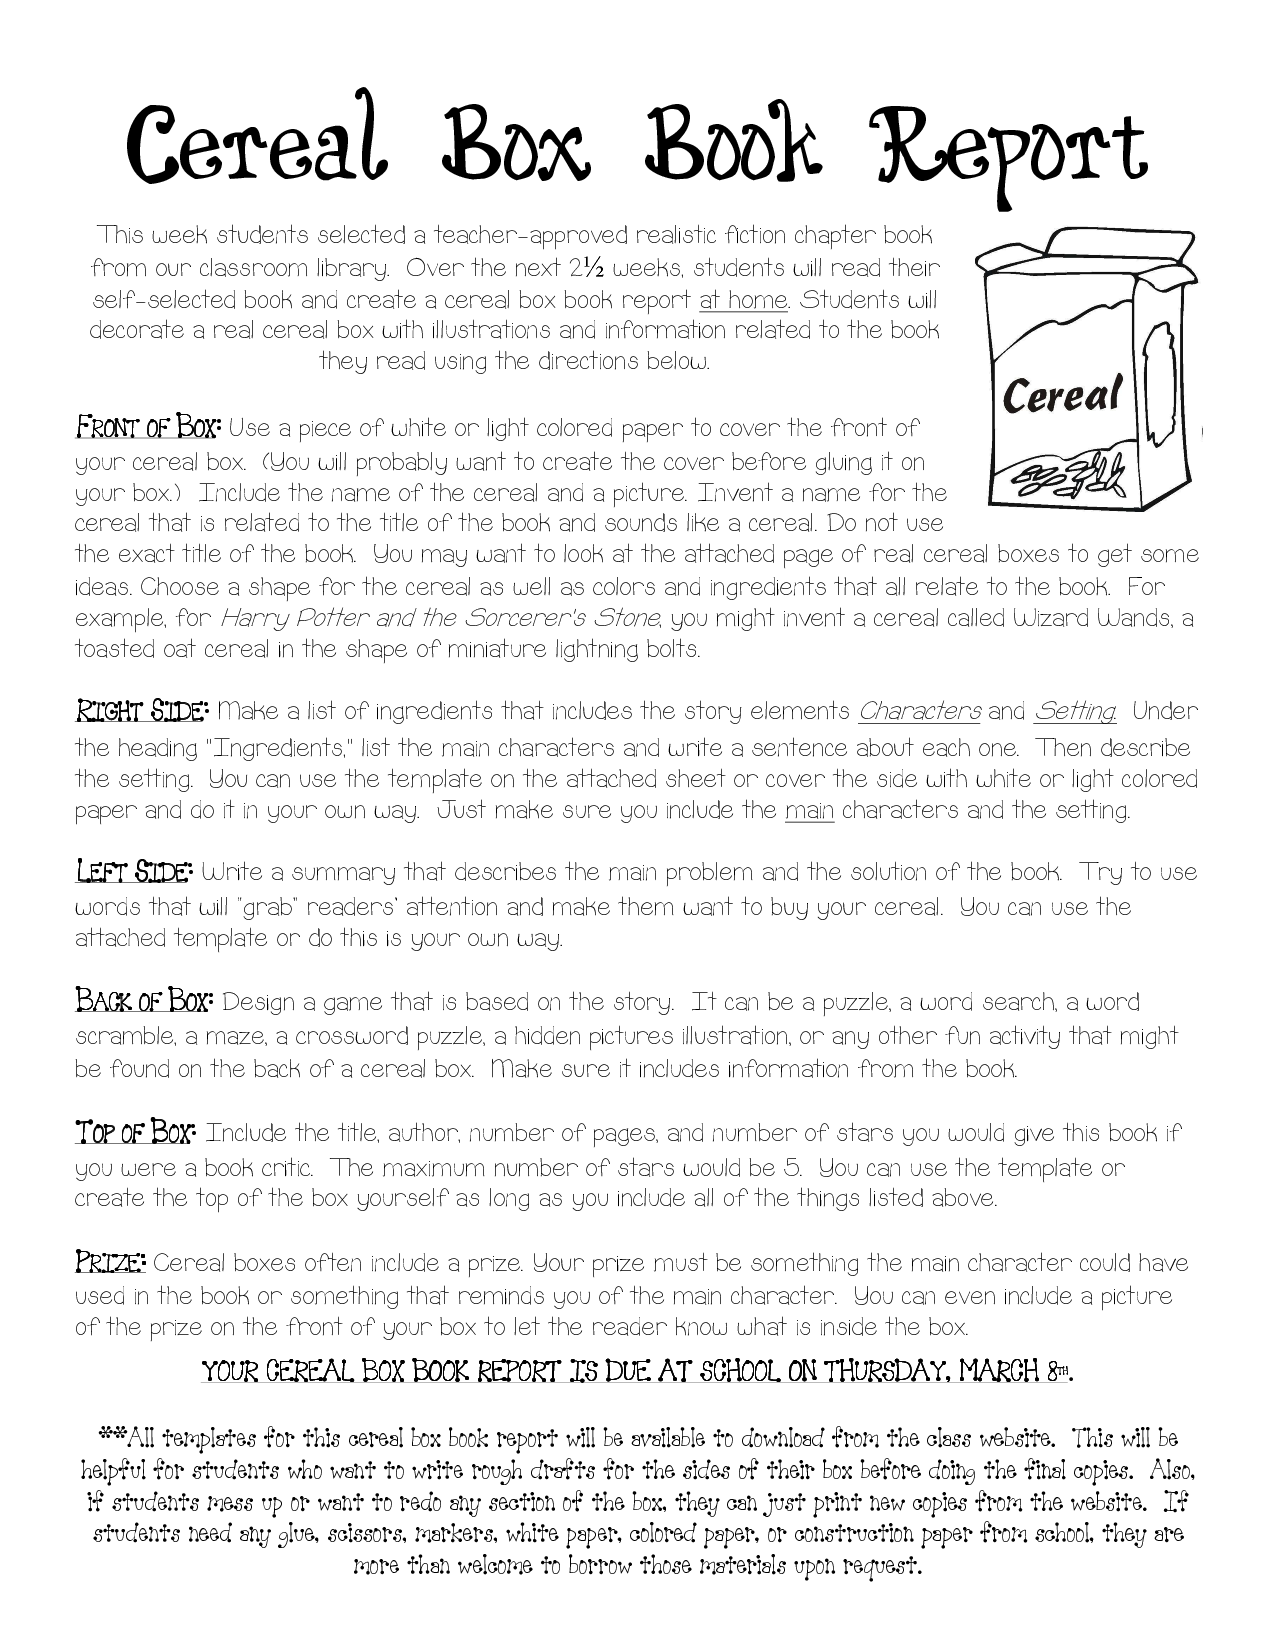 Cereal Box Book Report Instructions – Sample Cereal Box Book Report Template